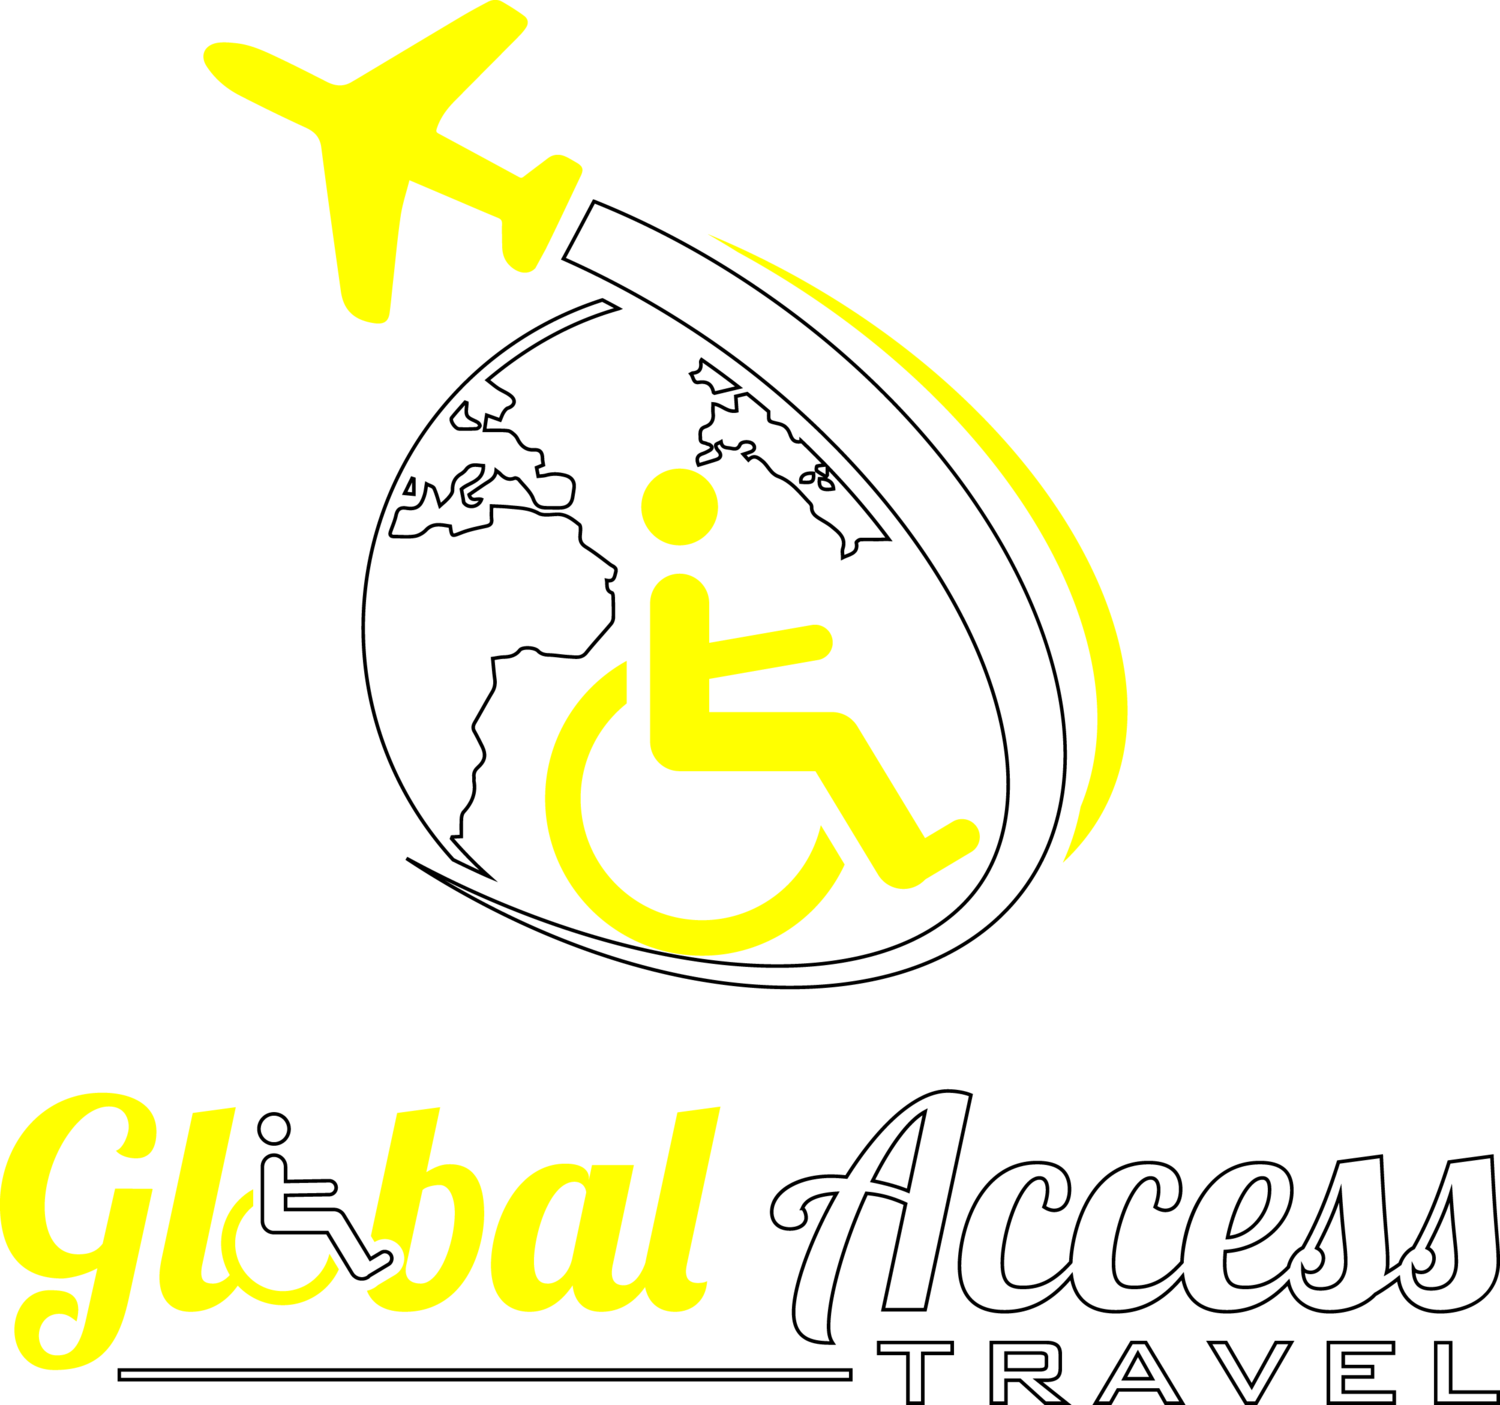 Global Access Travel